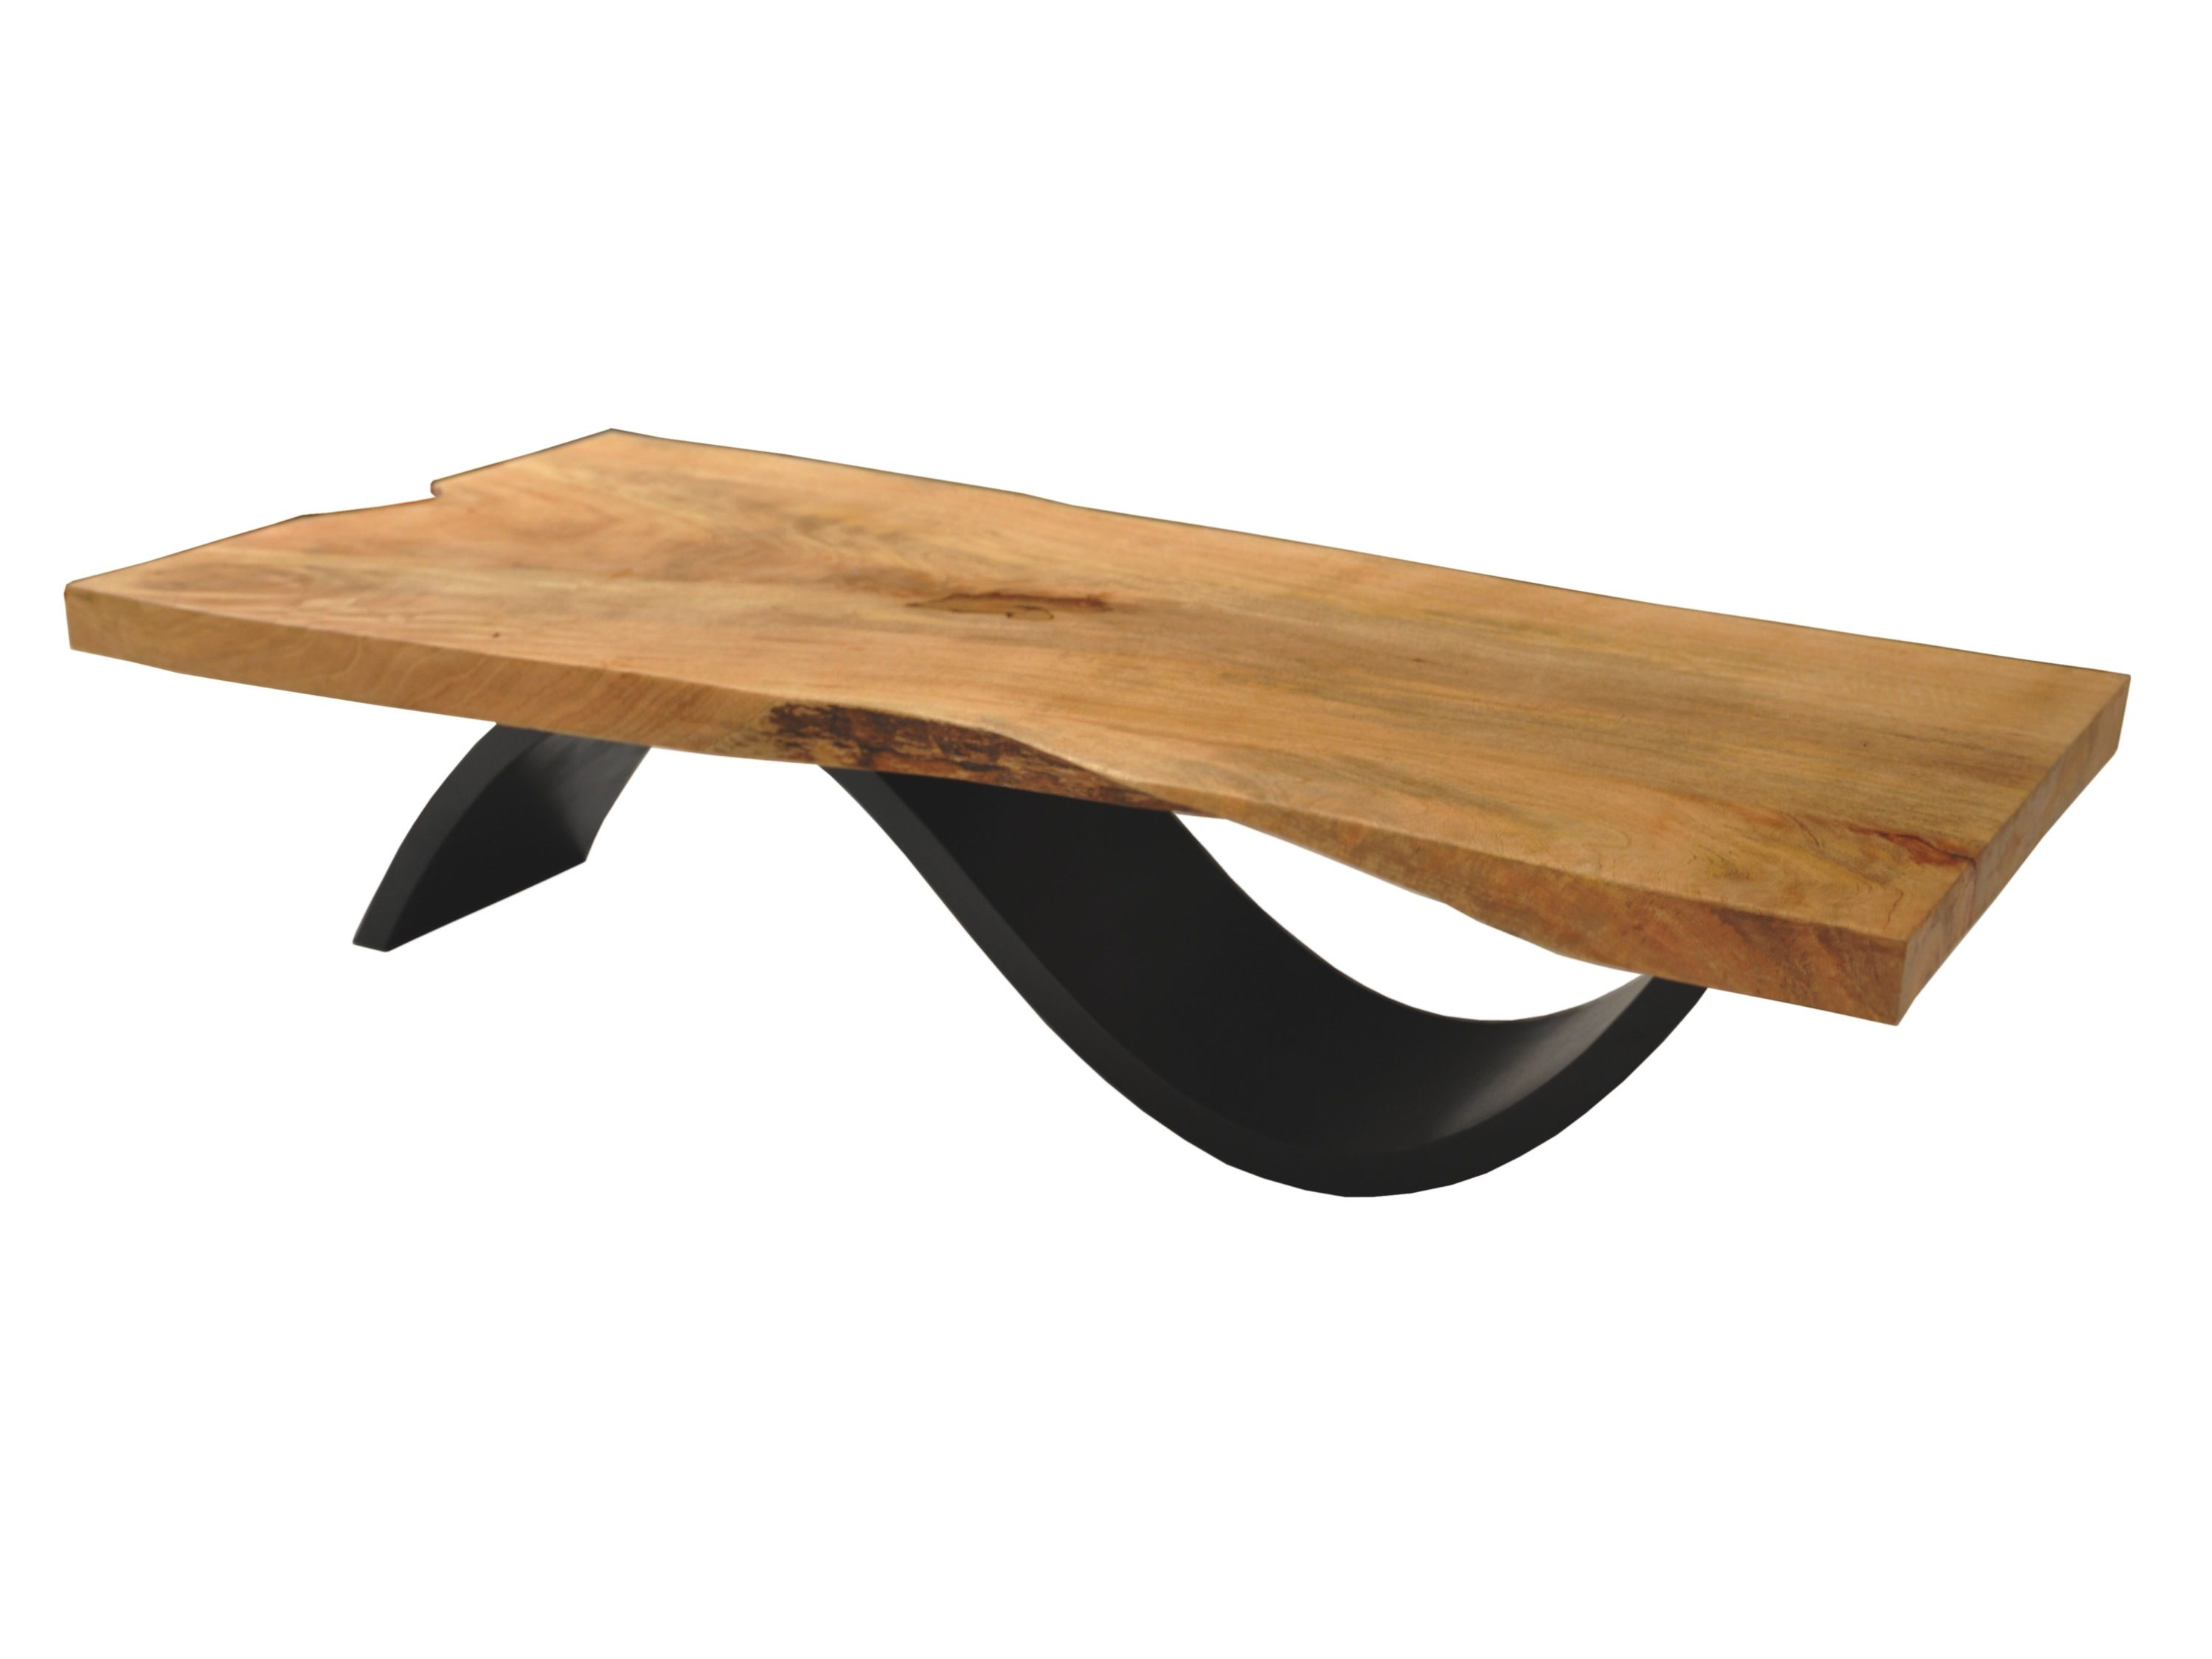 Brasilia Coffee Table Solid Wood Top Veneered Base Solid Wood Live Edge Coffee Table Made With A Single Slab Of Reclai Couchtisch Holz Couchtisch Tisch